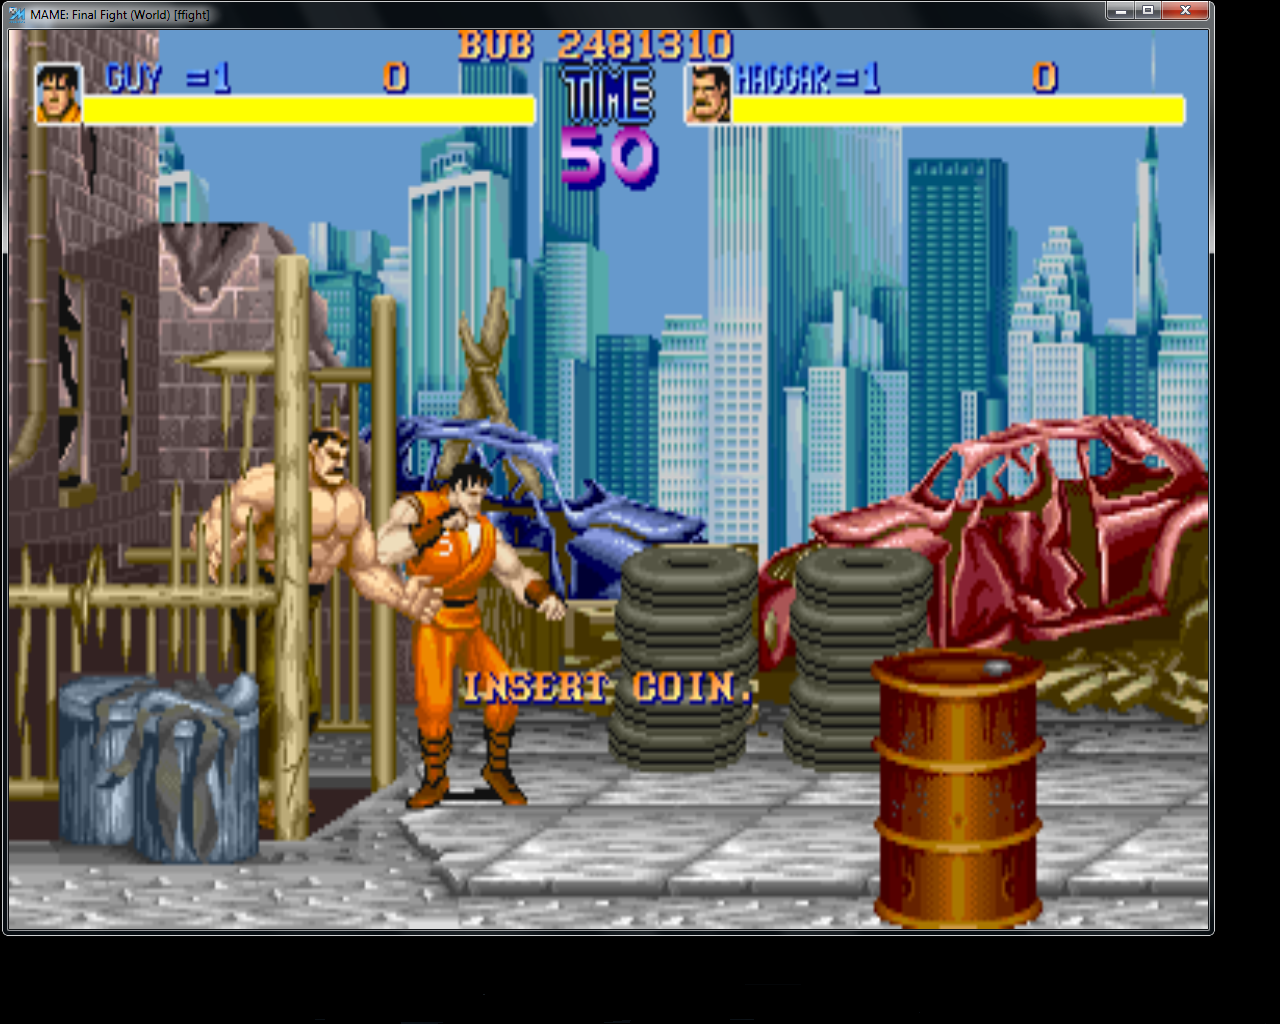 bubufubu: Final Fight (Arcade Emulated / M.A.M.E.) 2,481,310 points on 2015-04-30 21:26:56